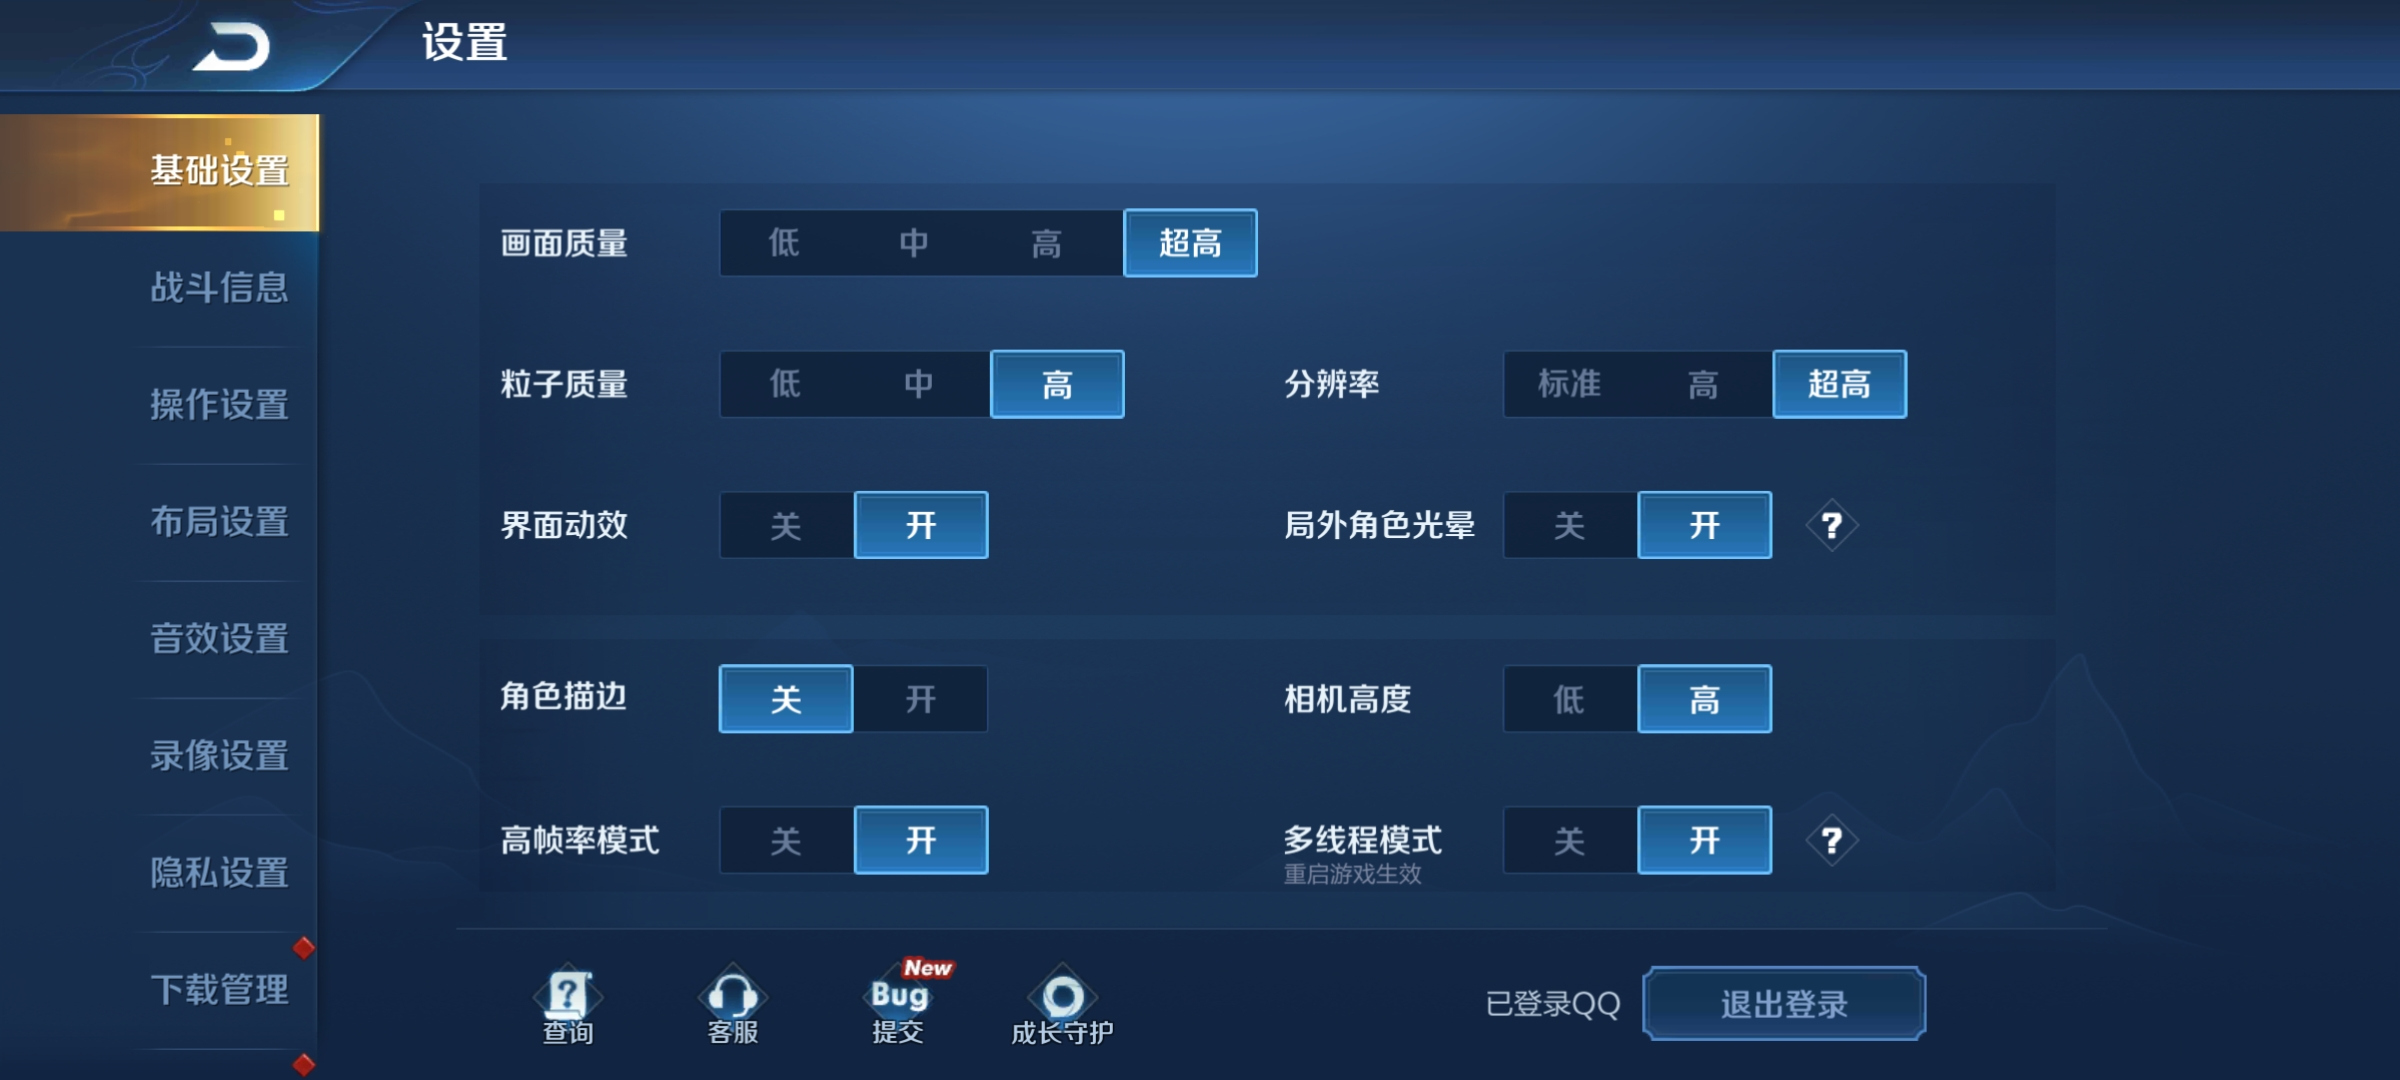 Screenshot_20200814_112826_com.tencent.tmgp.sgame.jpg